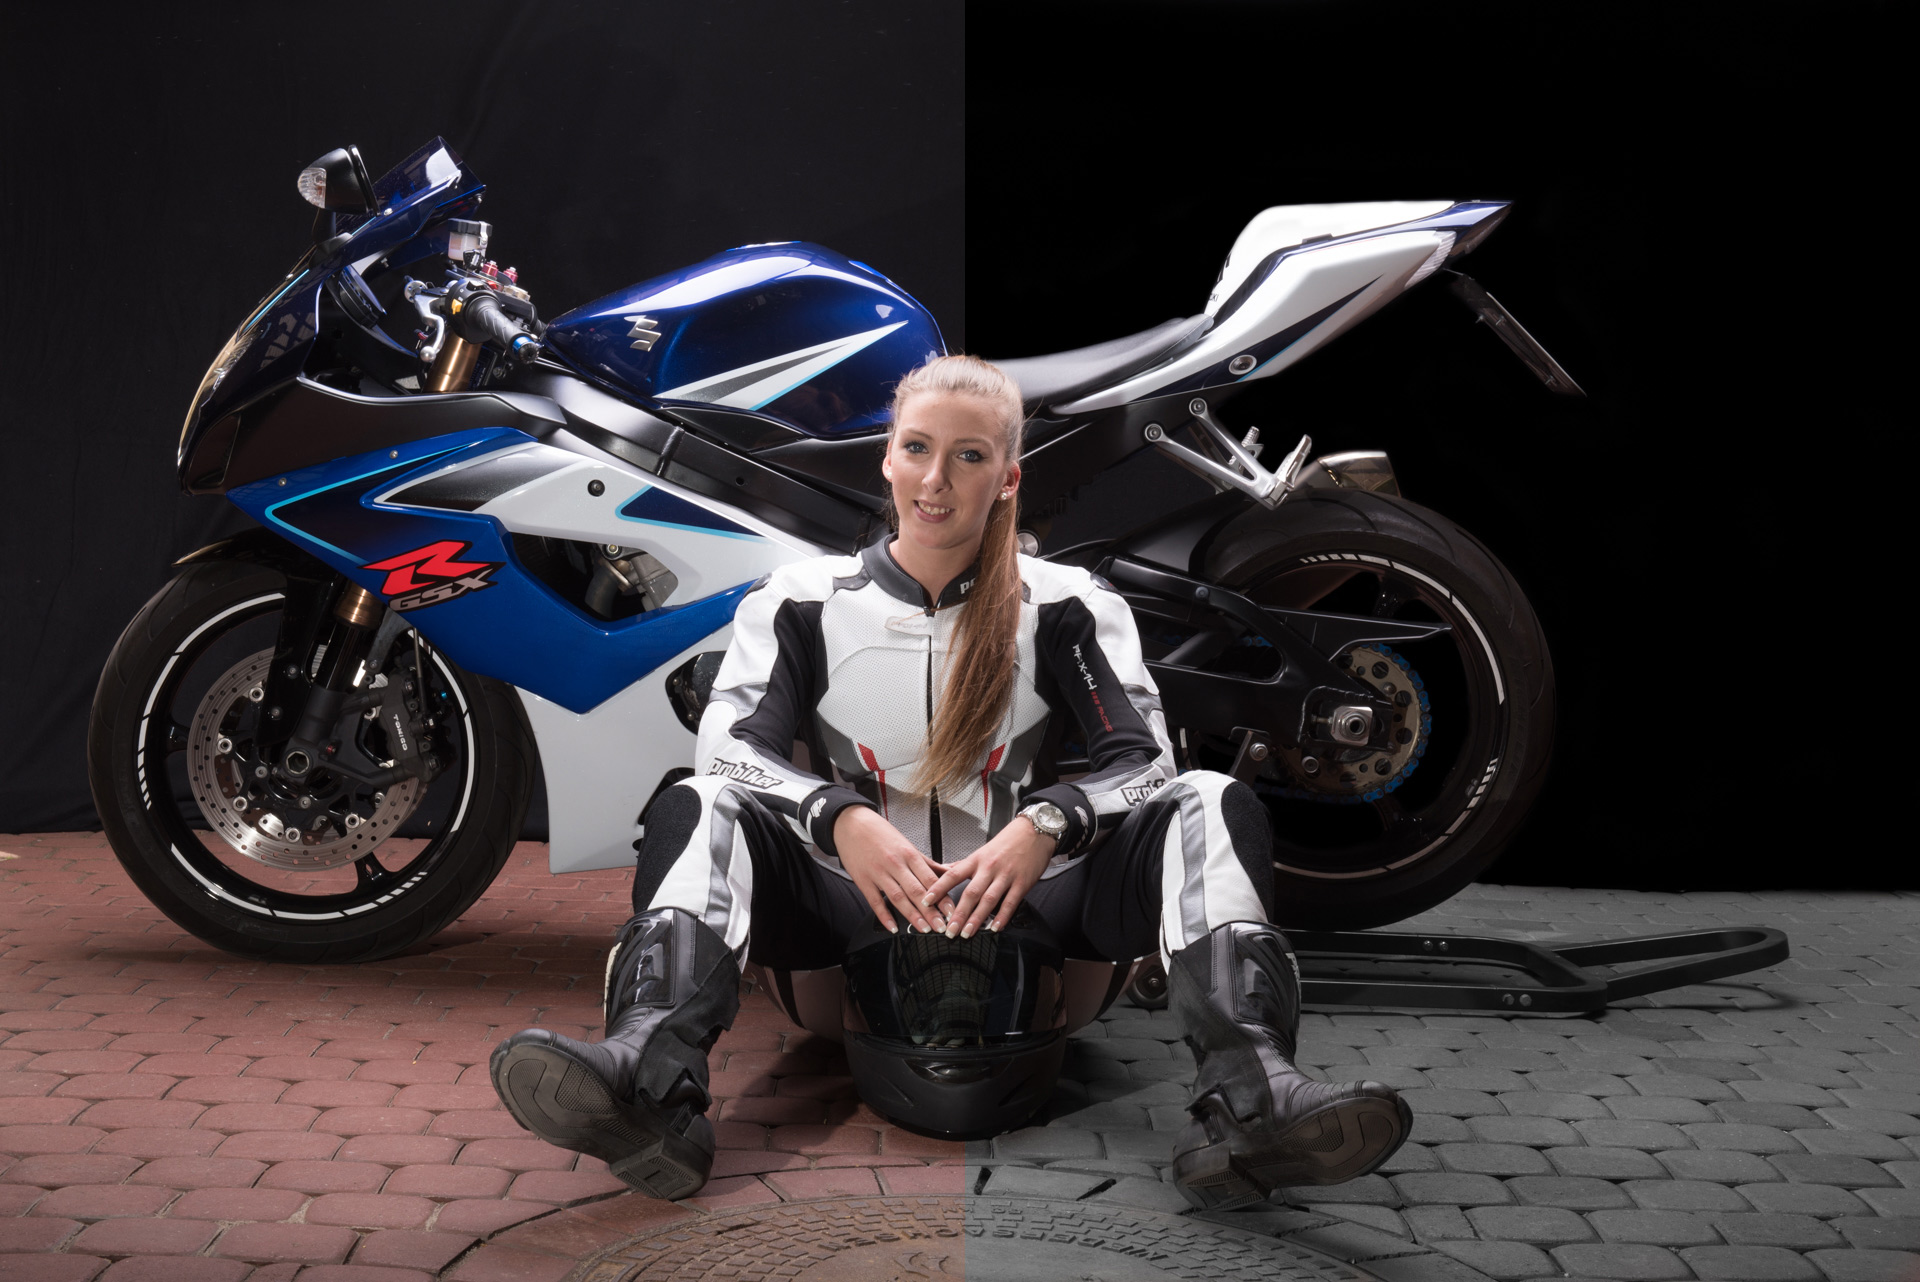 Video: Post-processing a motorcycle studio image